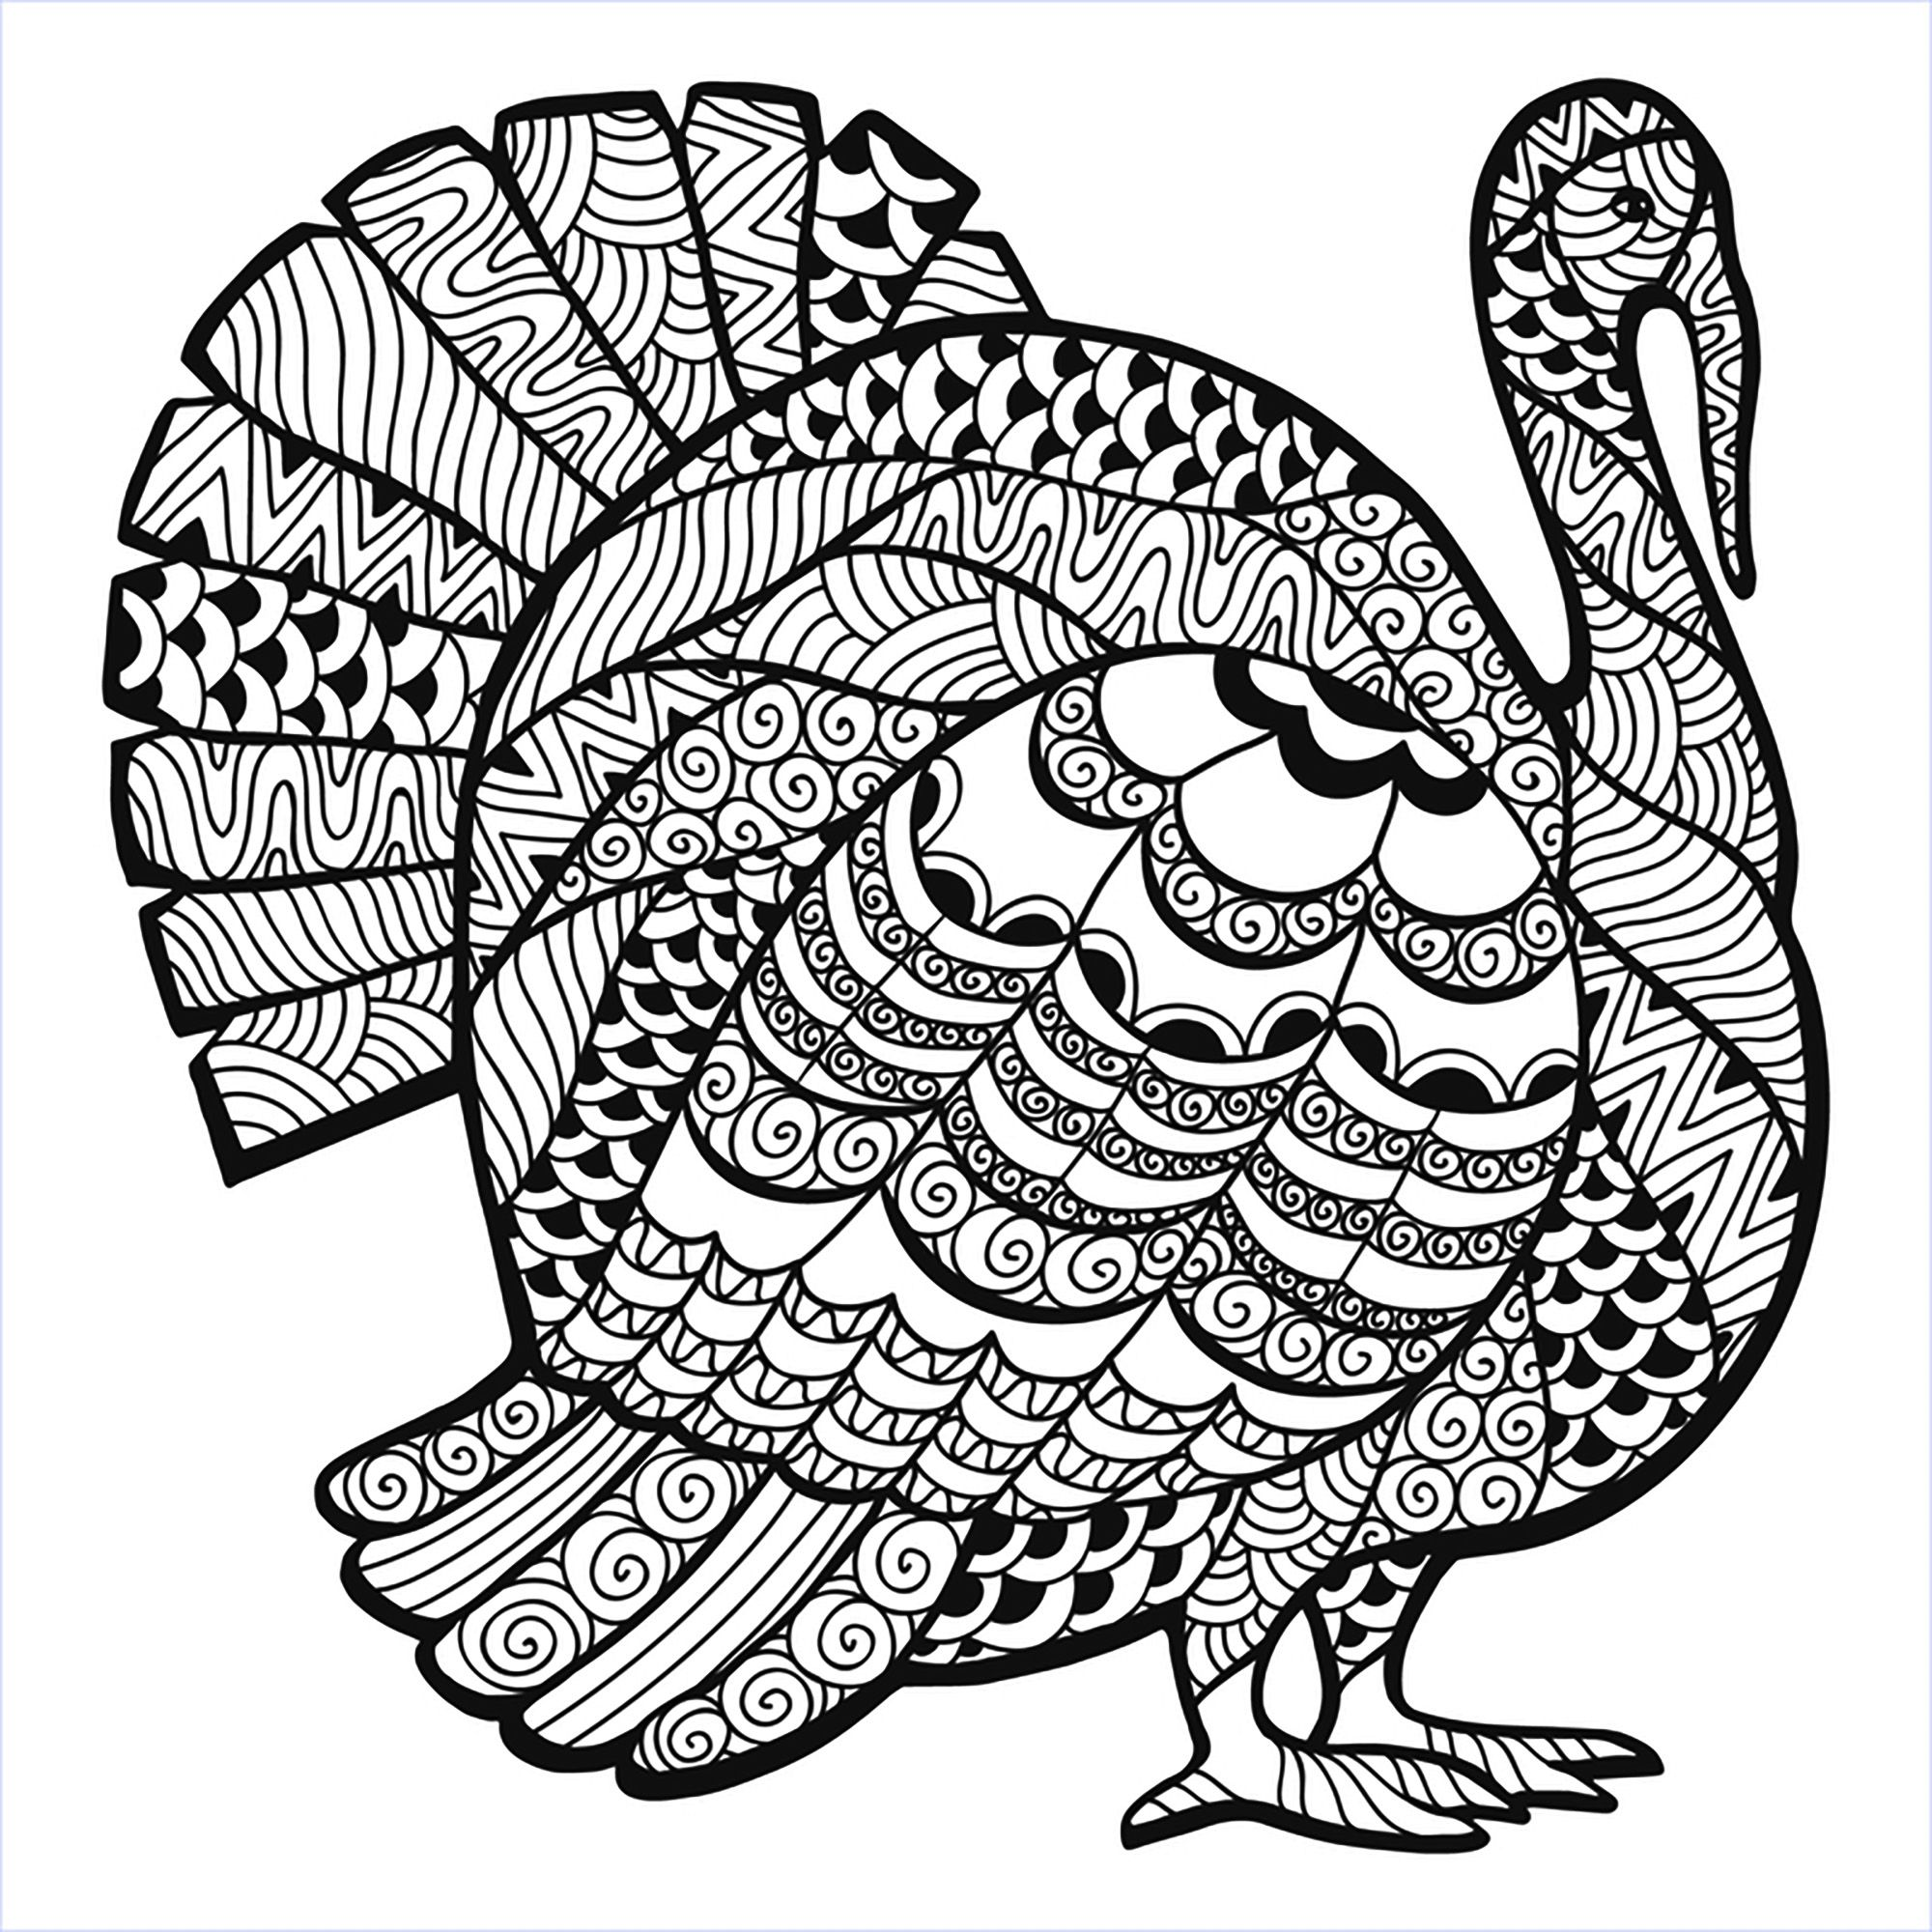 Thanksgiving Turkey Zentangle Coloring page, From the